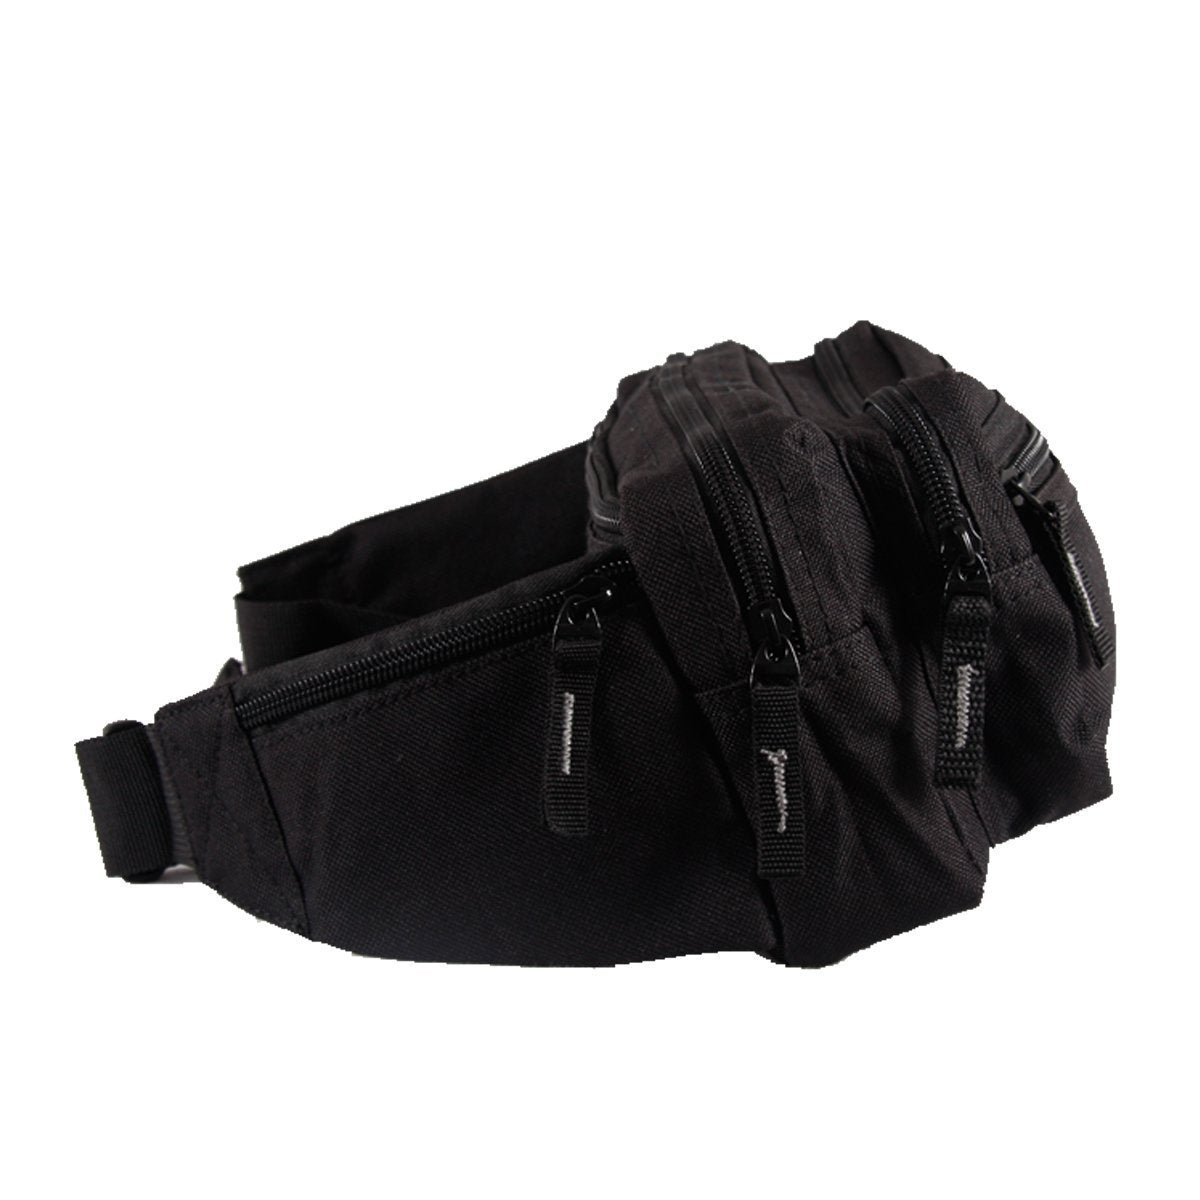 Bag King Deluxe Fanny Pack